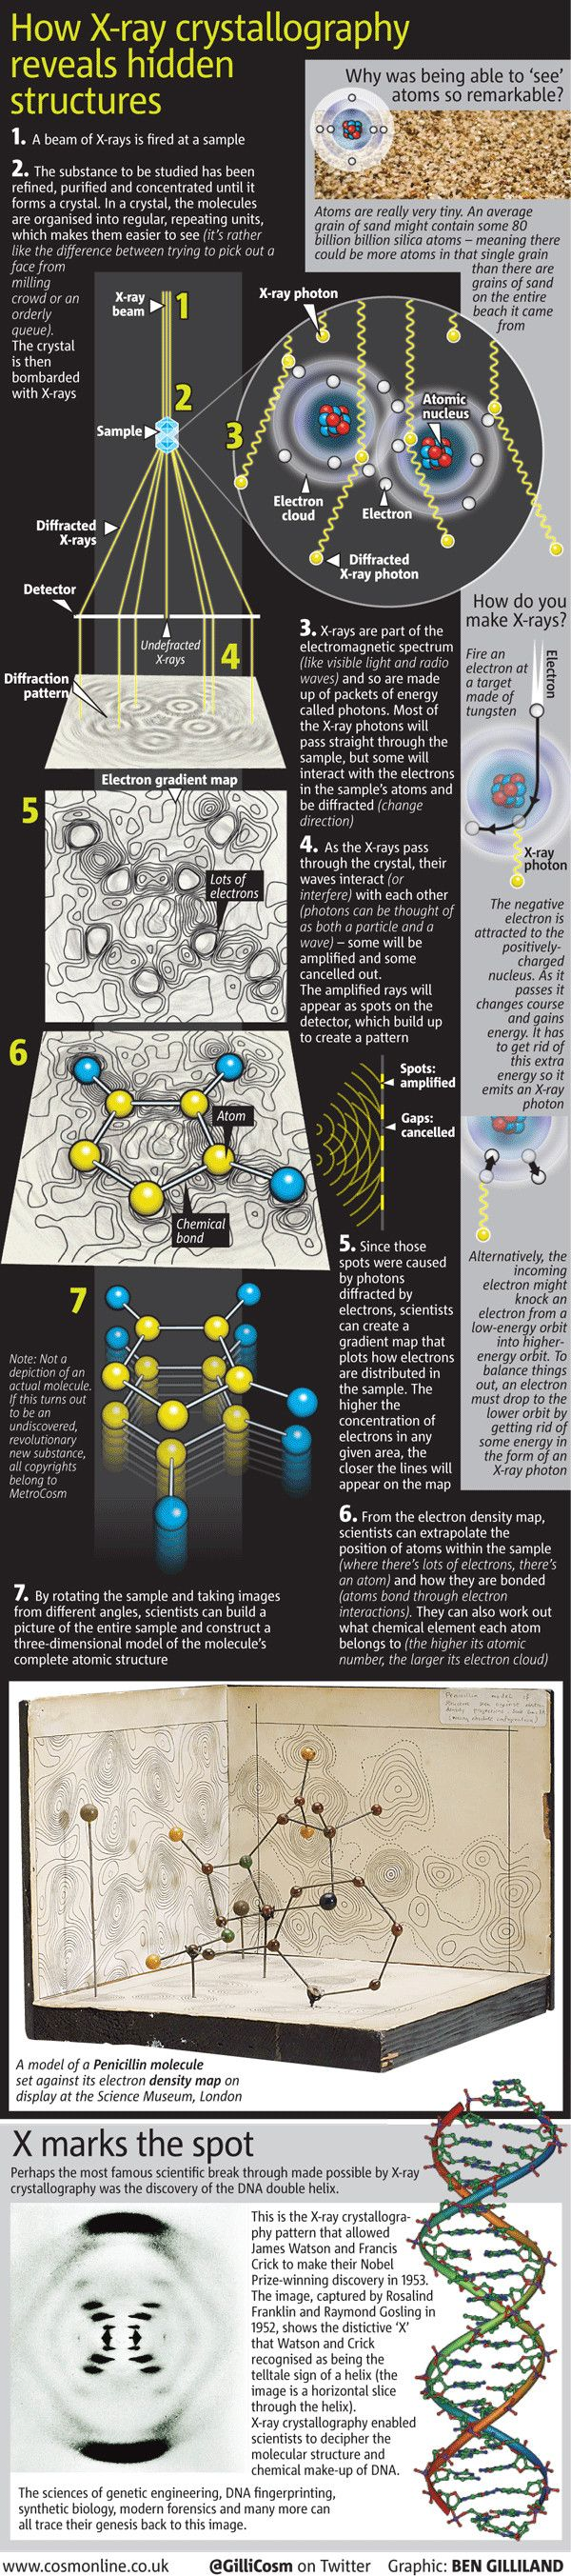 X-Ray Crystallography and the Discovery of DNA + Credit to Rosalind Franklin!